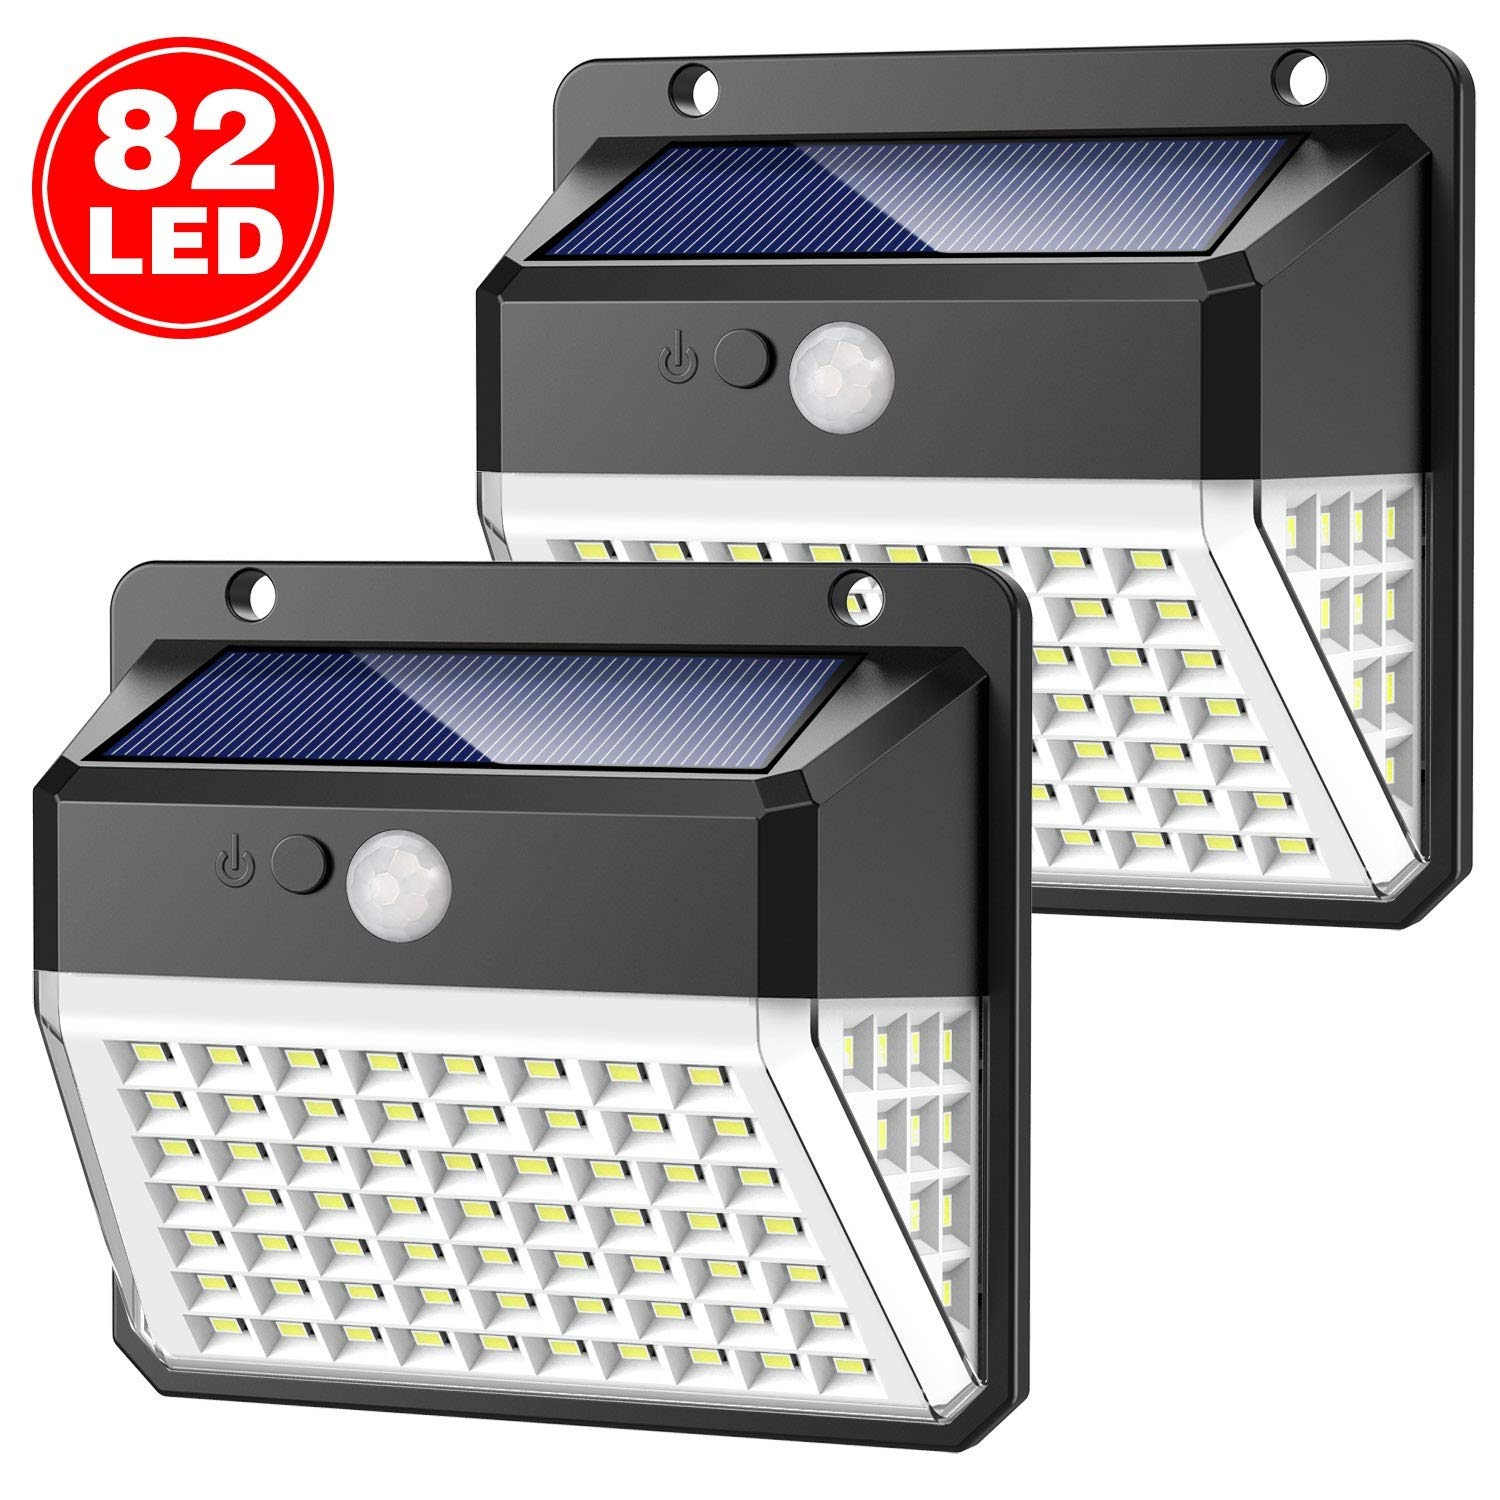 Solar Lights Outdoor, Upgraded 82 LED Security Lights 3 Modes Wireless Motion Sensor Light with 270° Wide Angle Solar Powered Lights Waterproof Wall Lights for Garden, Front Door, Pathway,Yard(2 Pack)